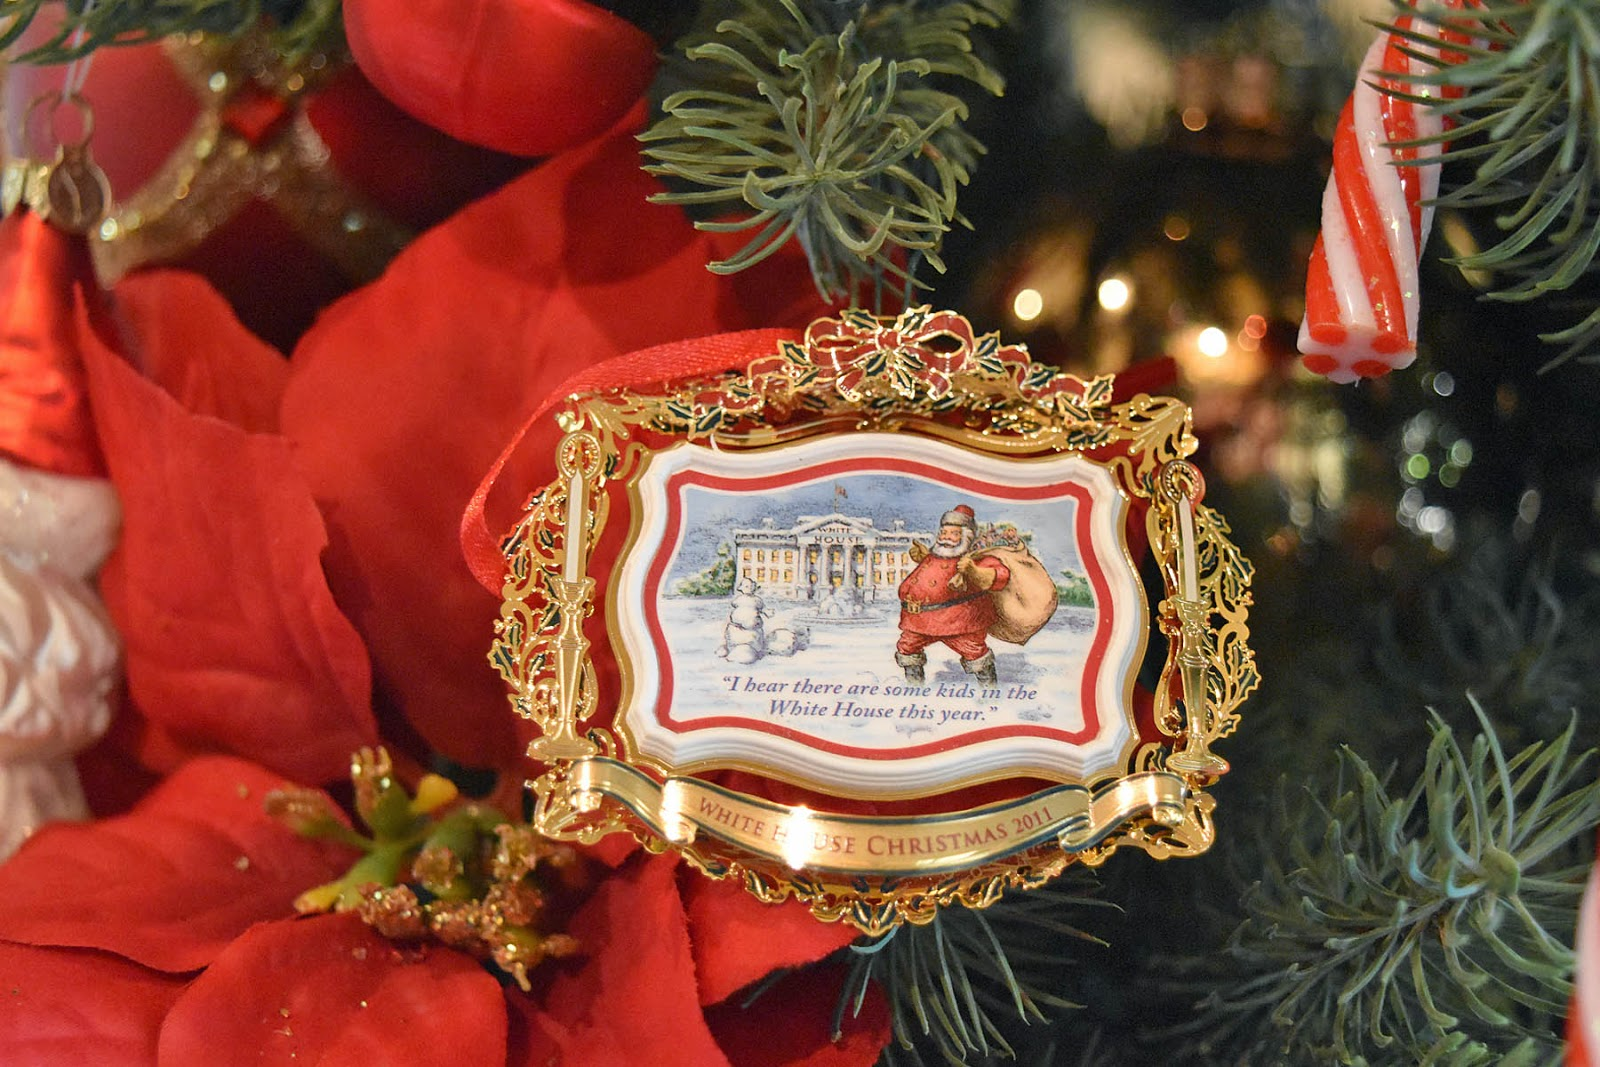 White house christmas ornaments by year - Santa Crossing The White House Lawn Exclaims I Hear There Are Kids In The White House This Year